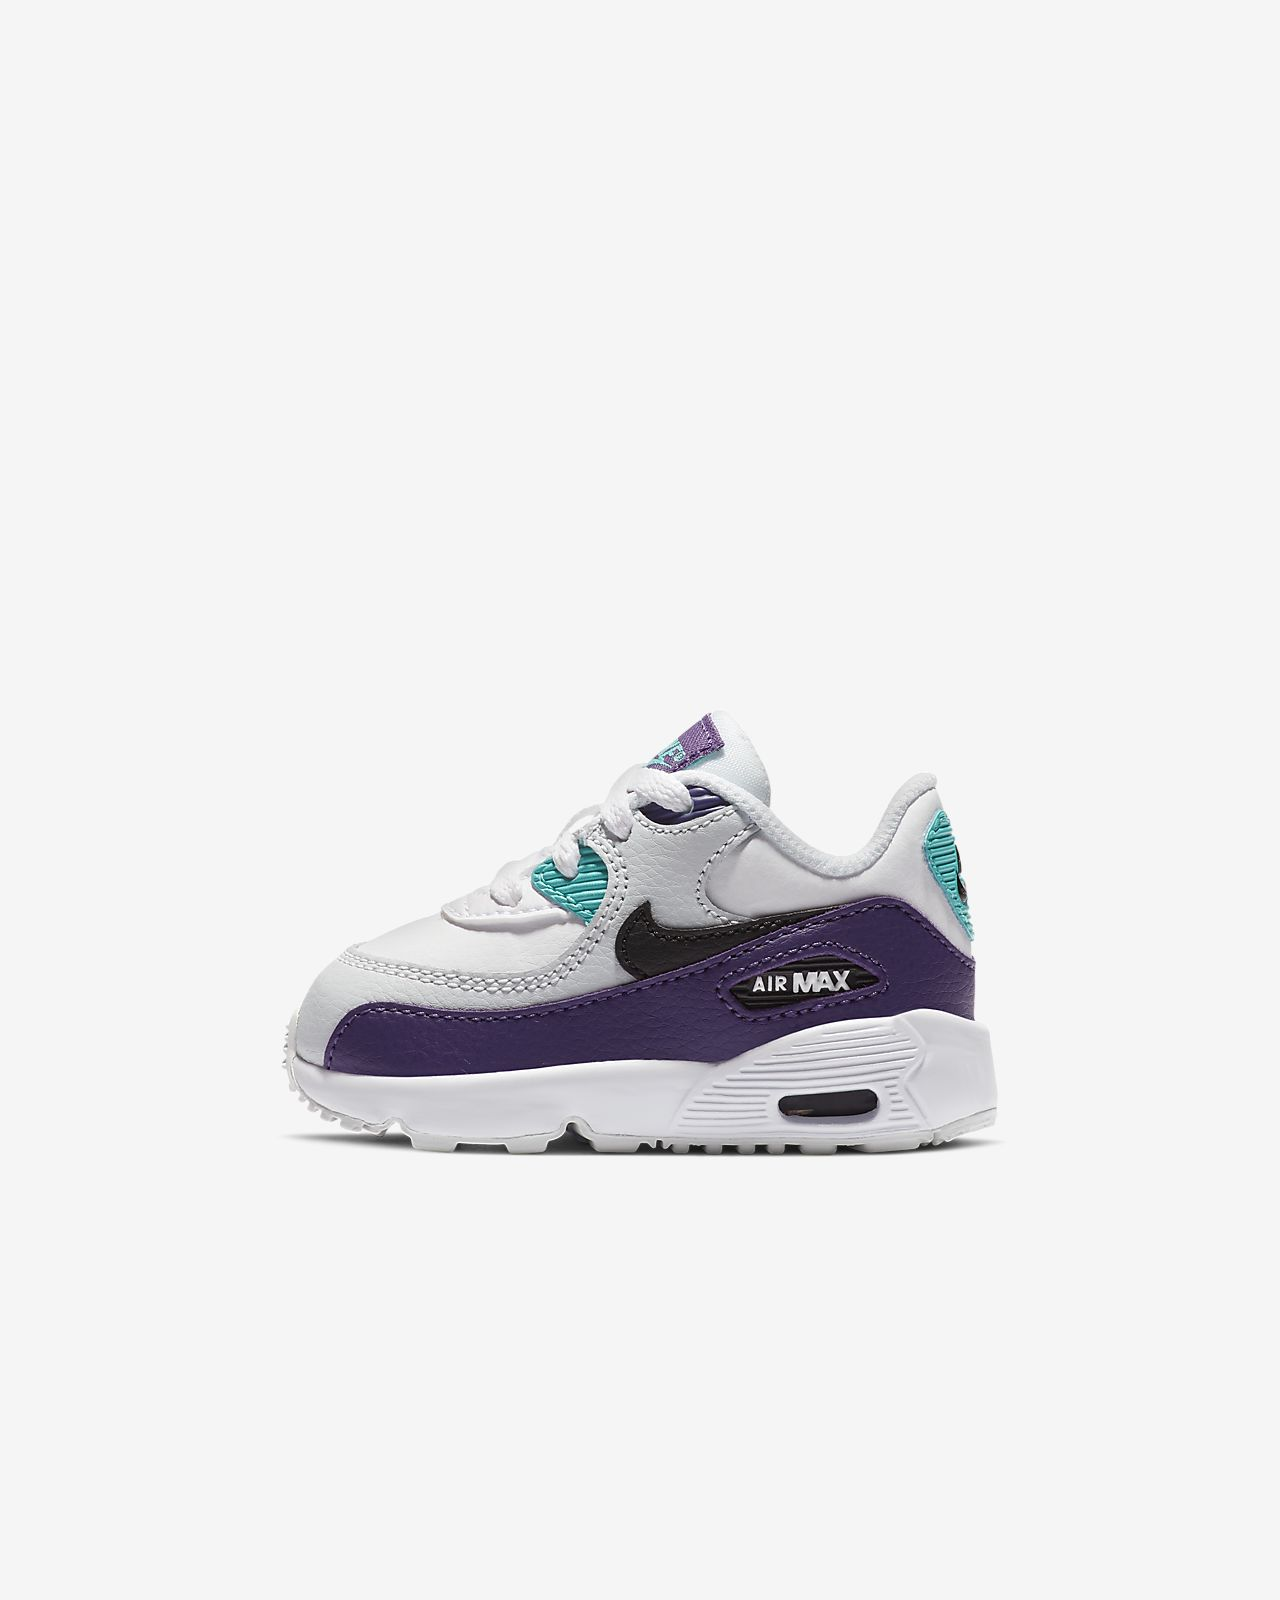 nike air max off white 90 på føttene